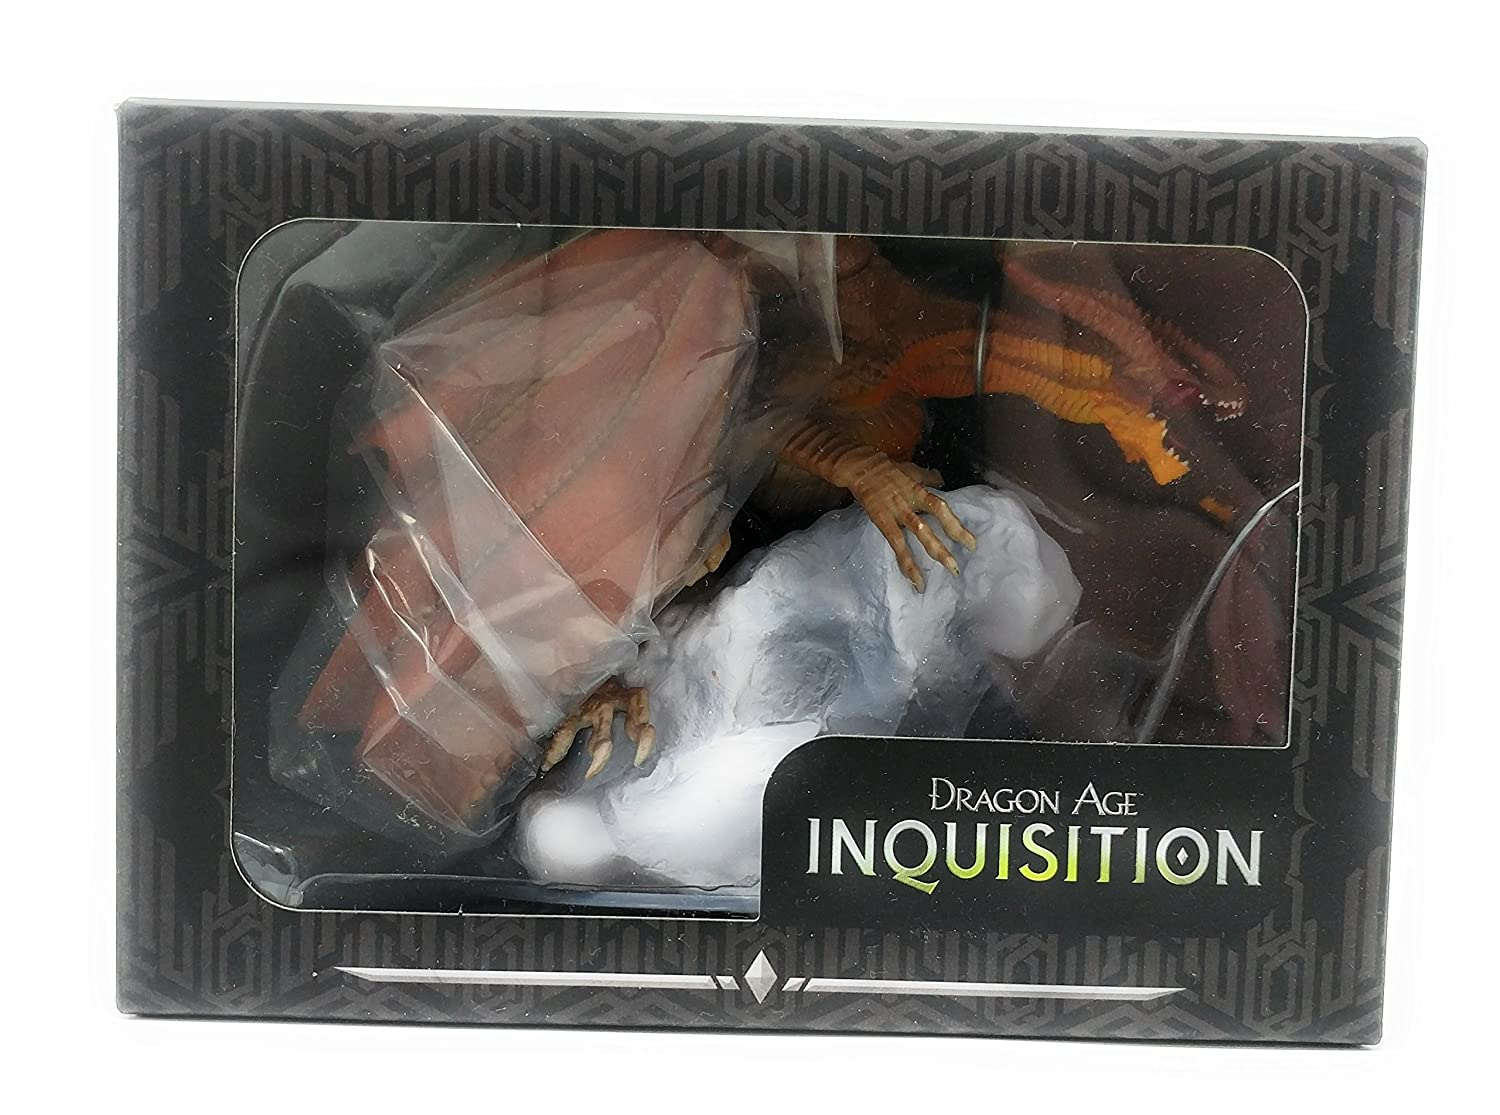 Dragon Age: Inquisition High Dragon Figure - Loot Crate Gaming Unbekannt